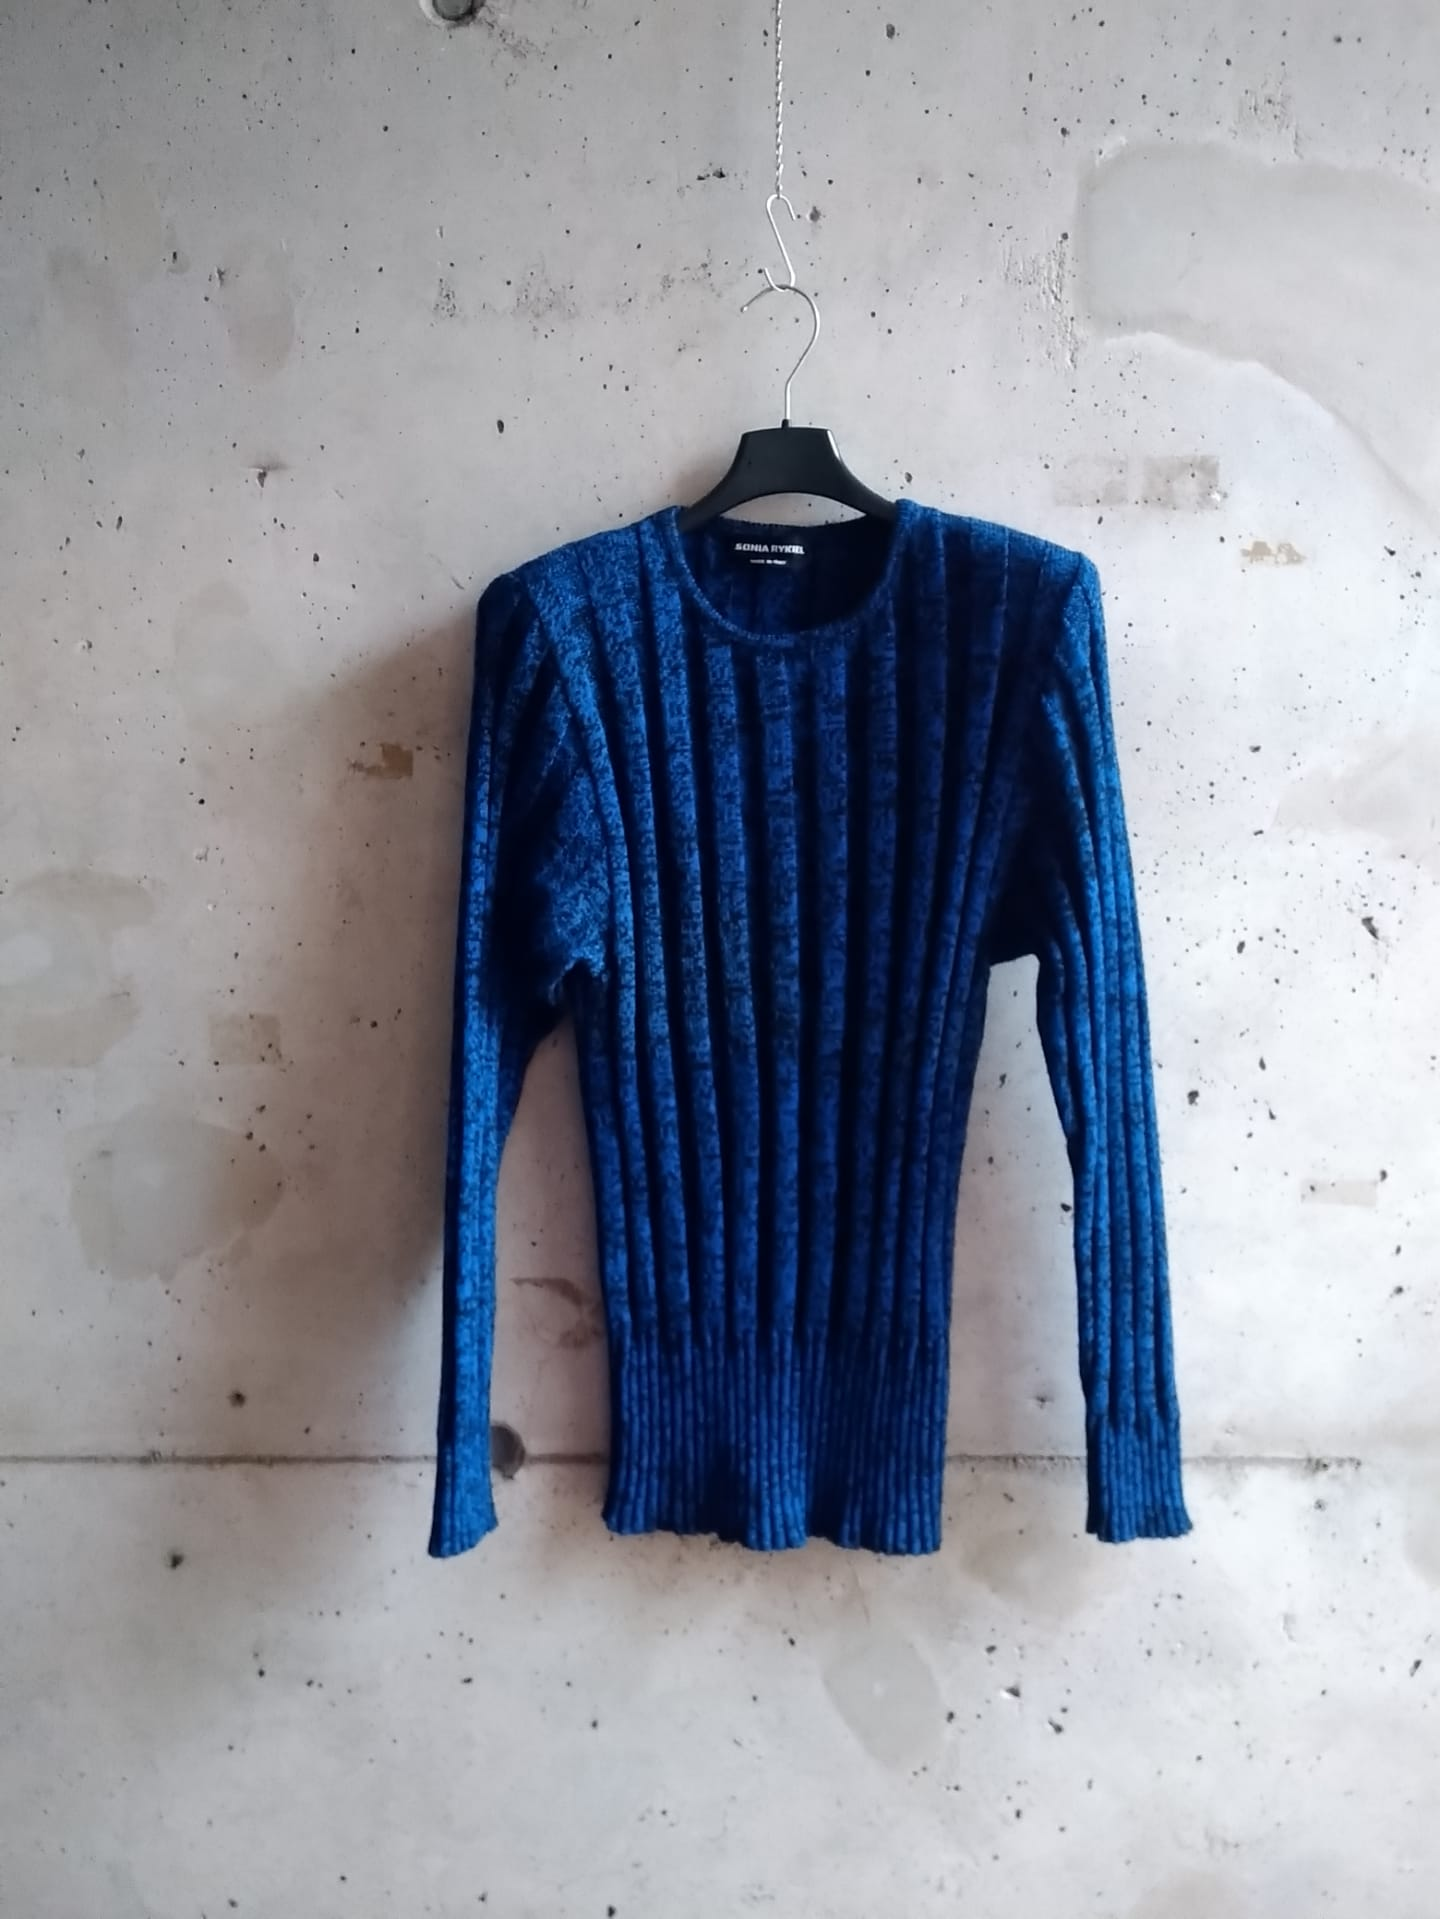 Sonia Rykiel sweater with removable collar